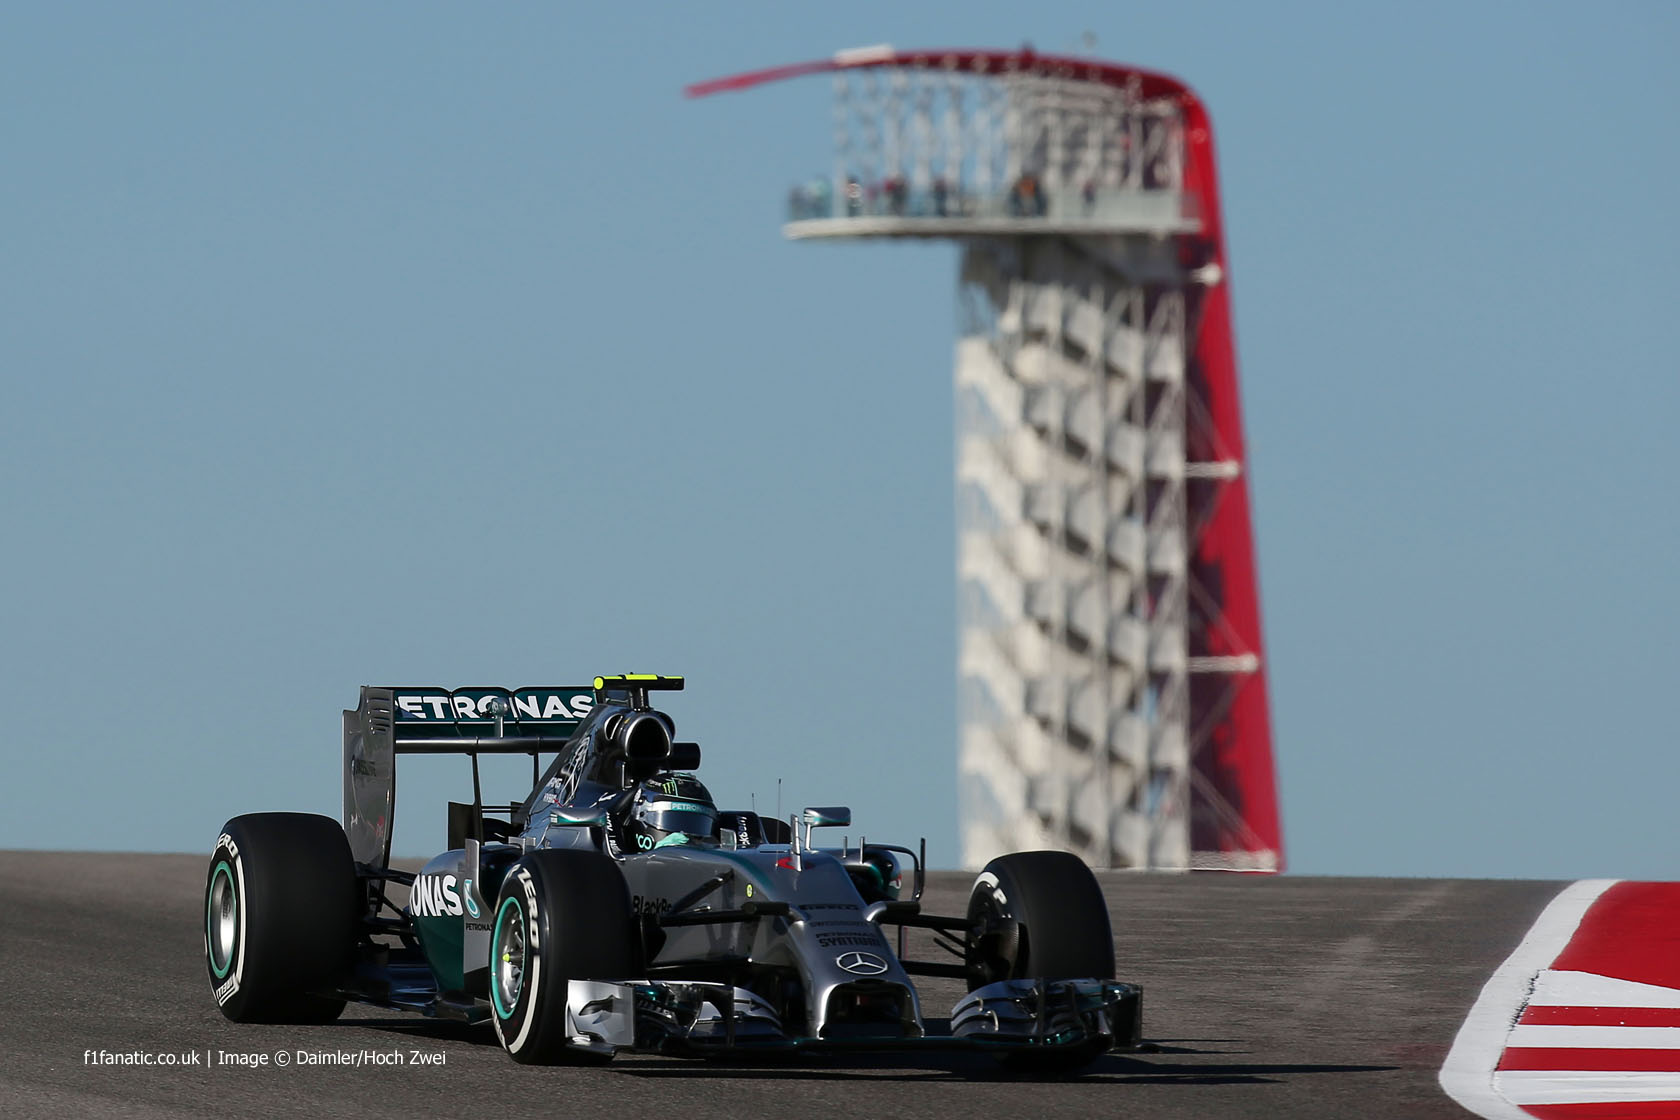 Nico Rosberg, Mercedes, Circuit of the Americas, 2014